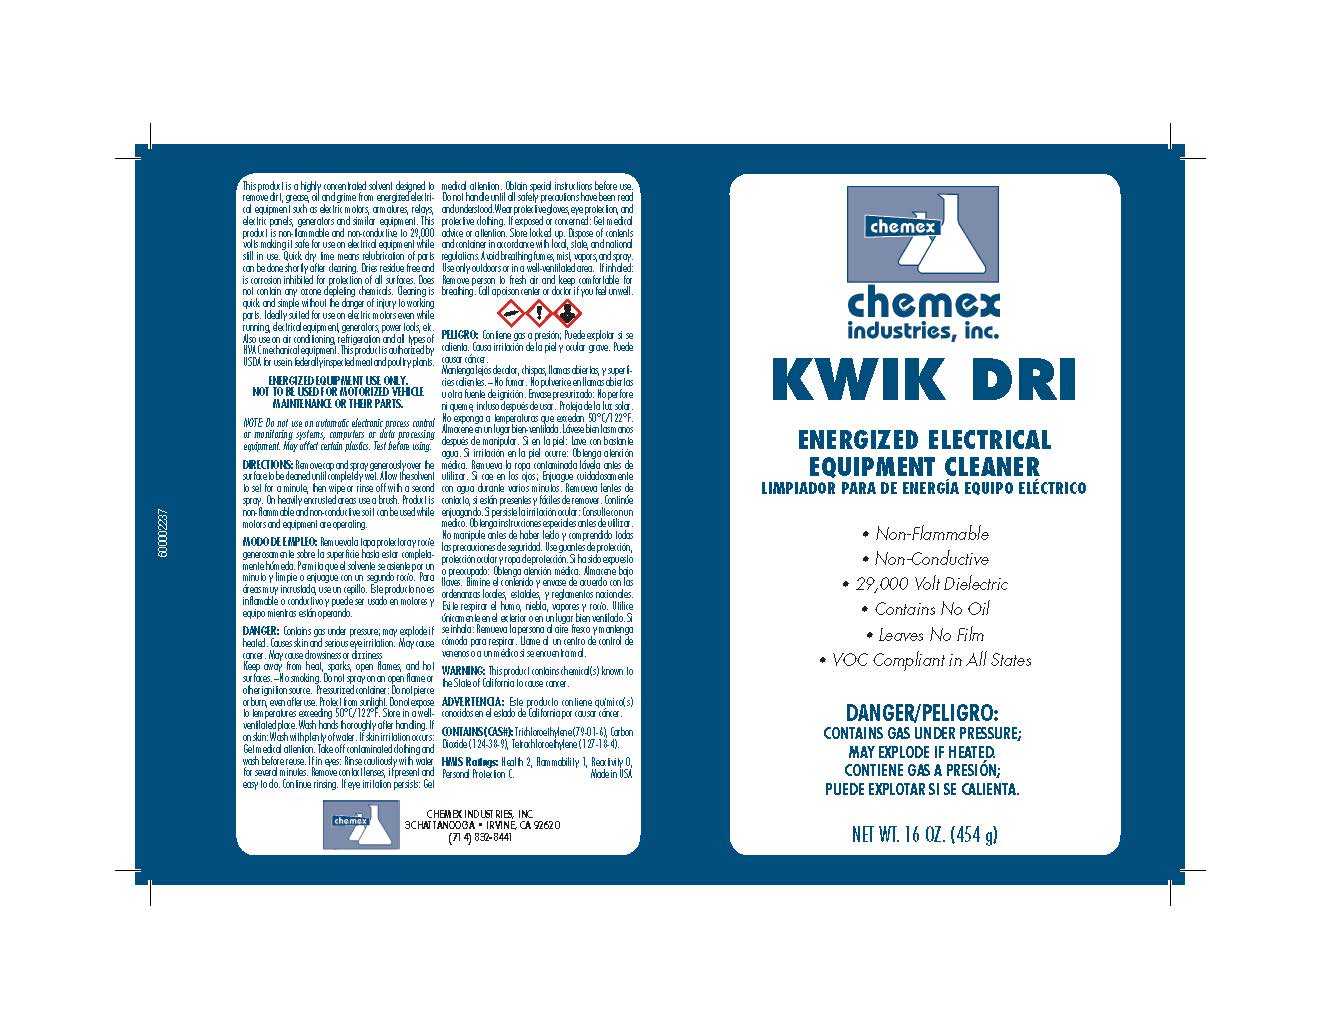 KWIK DRI LABEL APRIL 2015.jpg